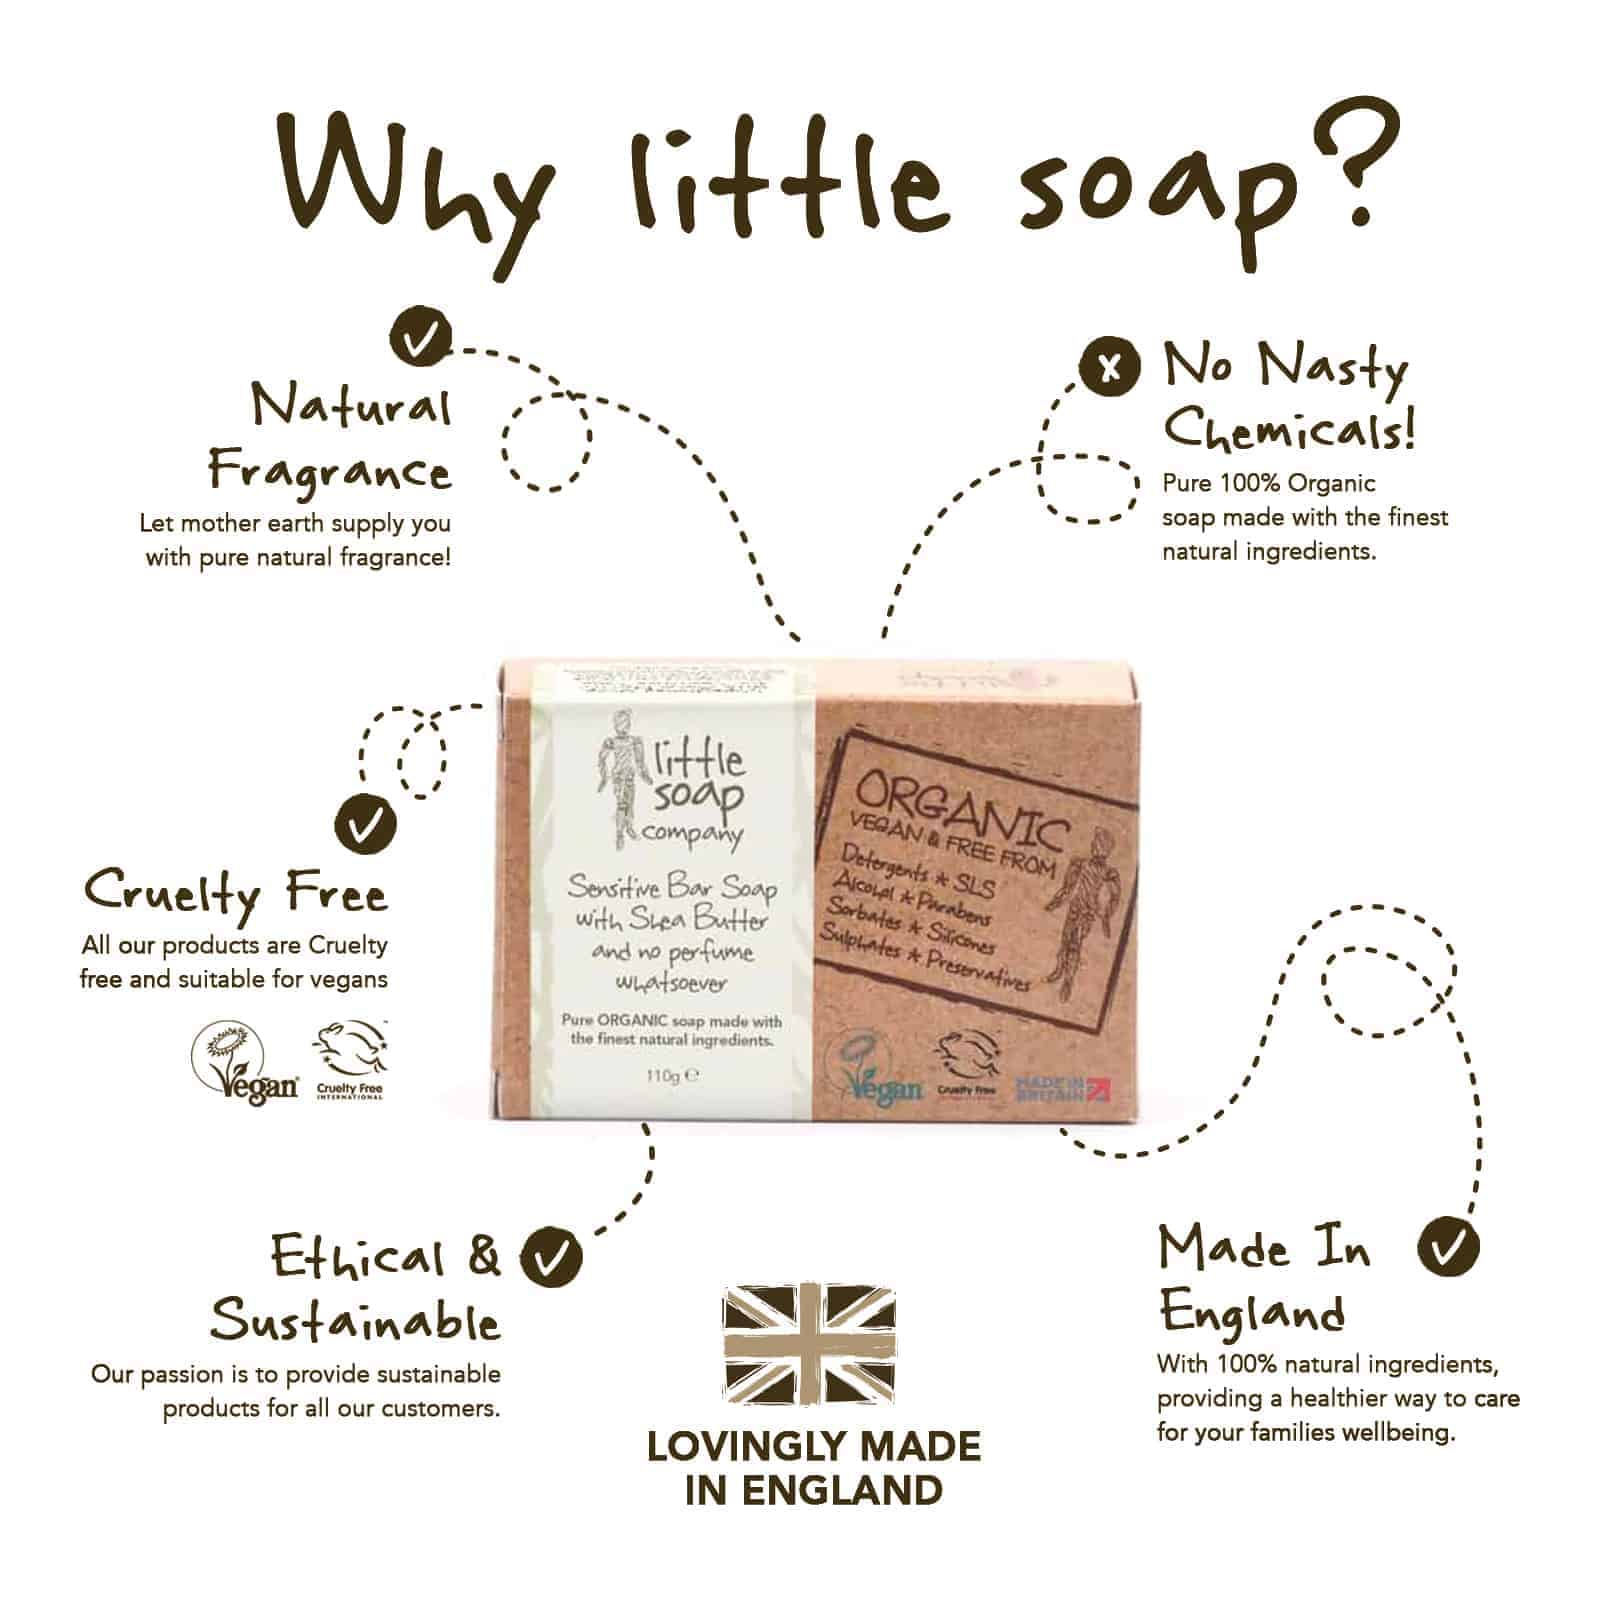 an interview with The Simple Things Magazine_LittleSoapCompany.co.uk